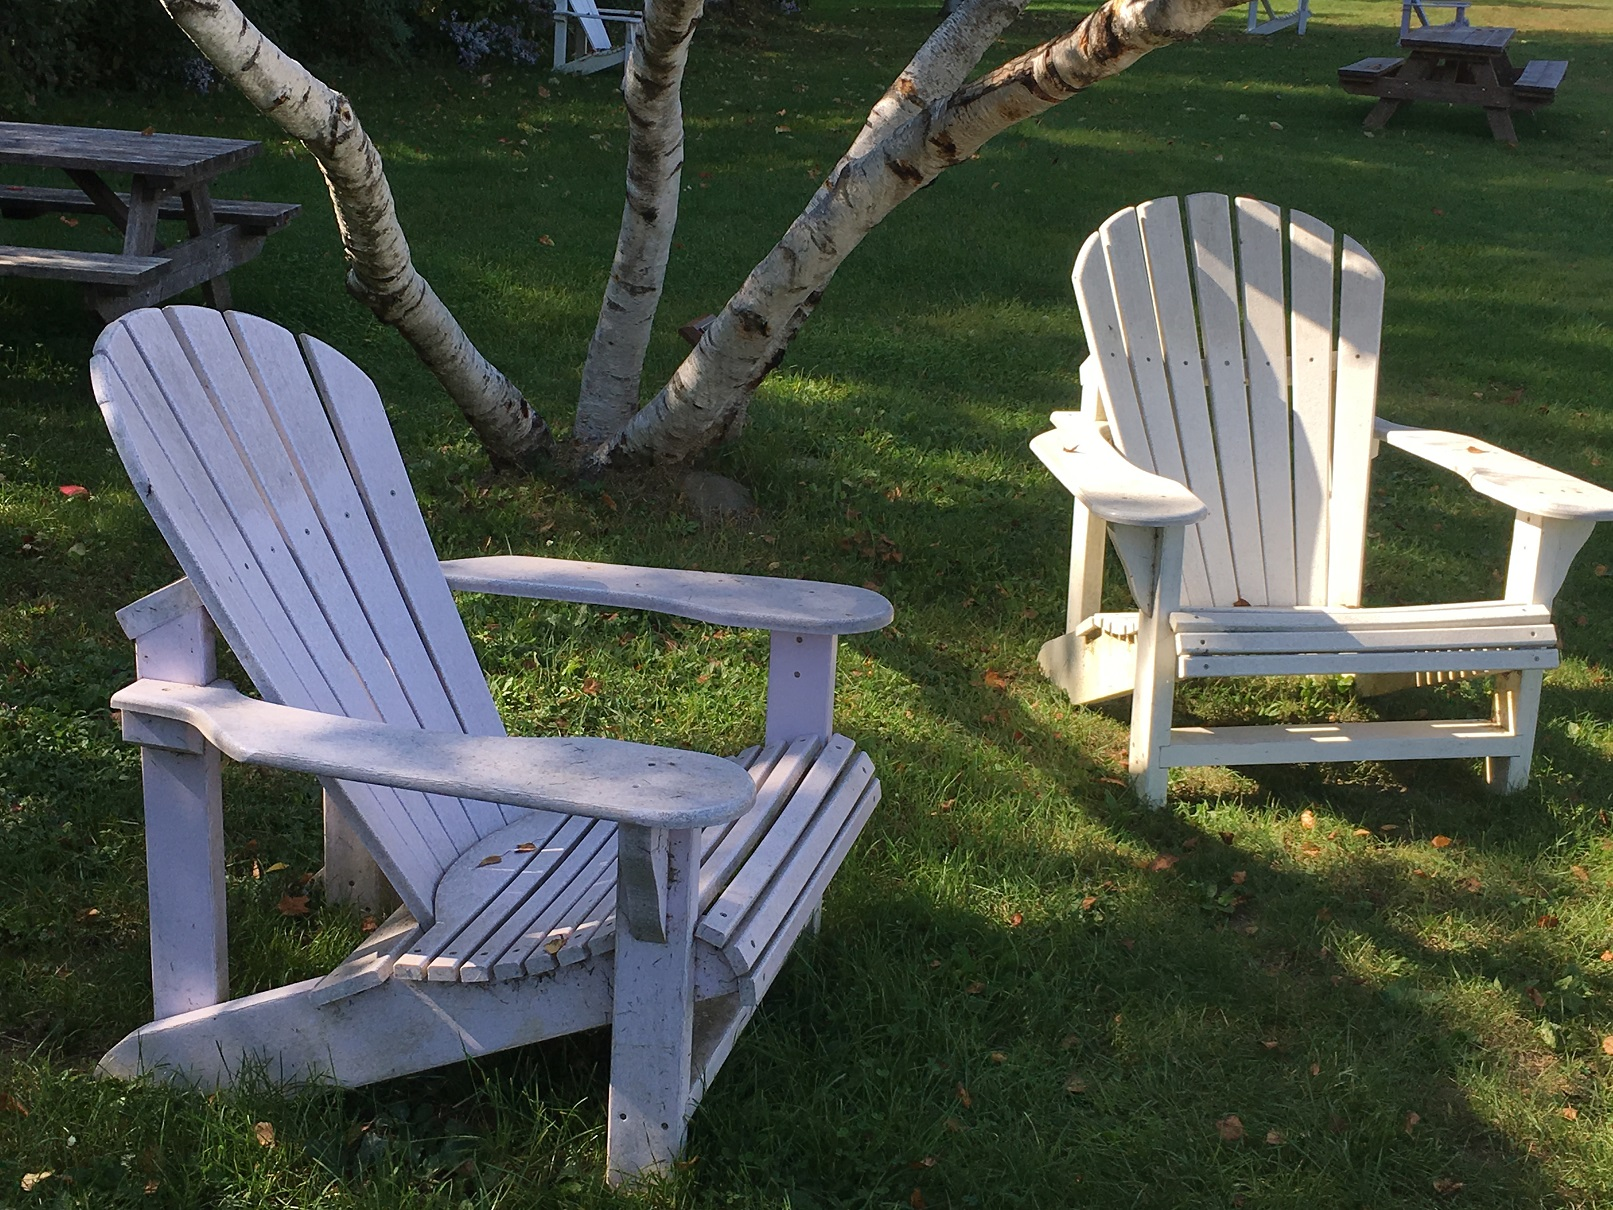 Outdoor office set up with two Adirondack chairs set near a group of White Birch